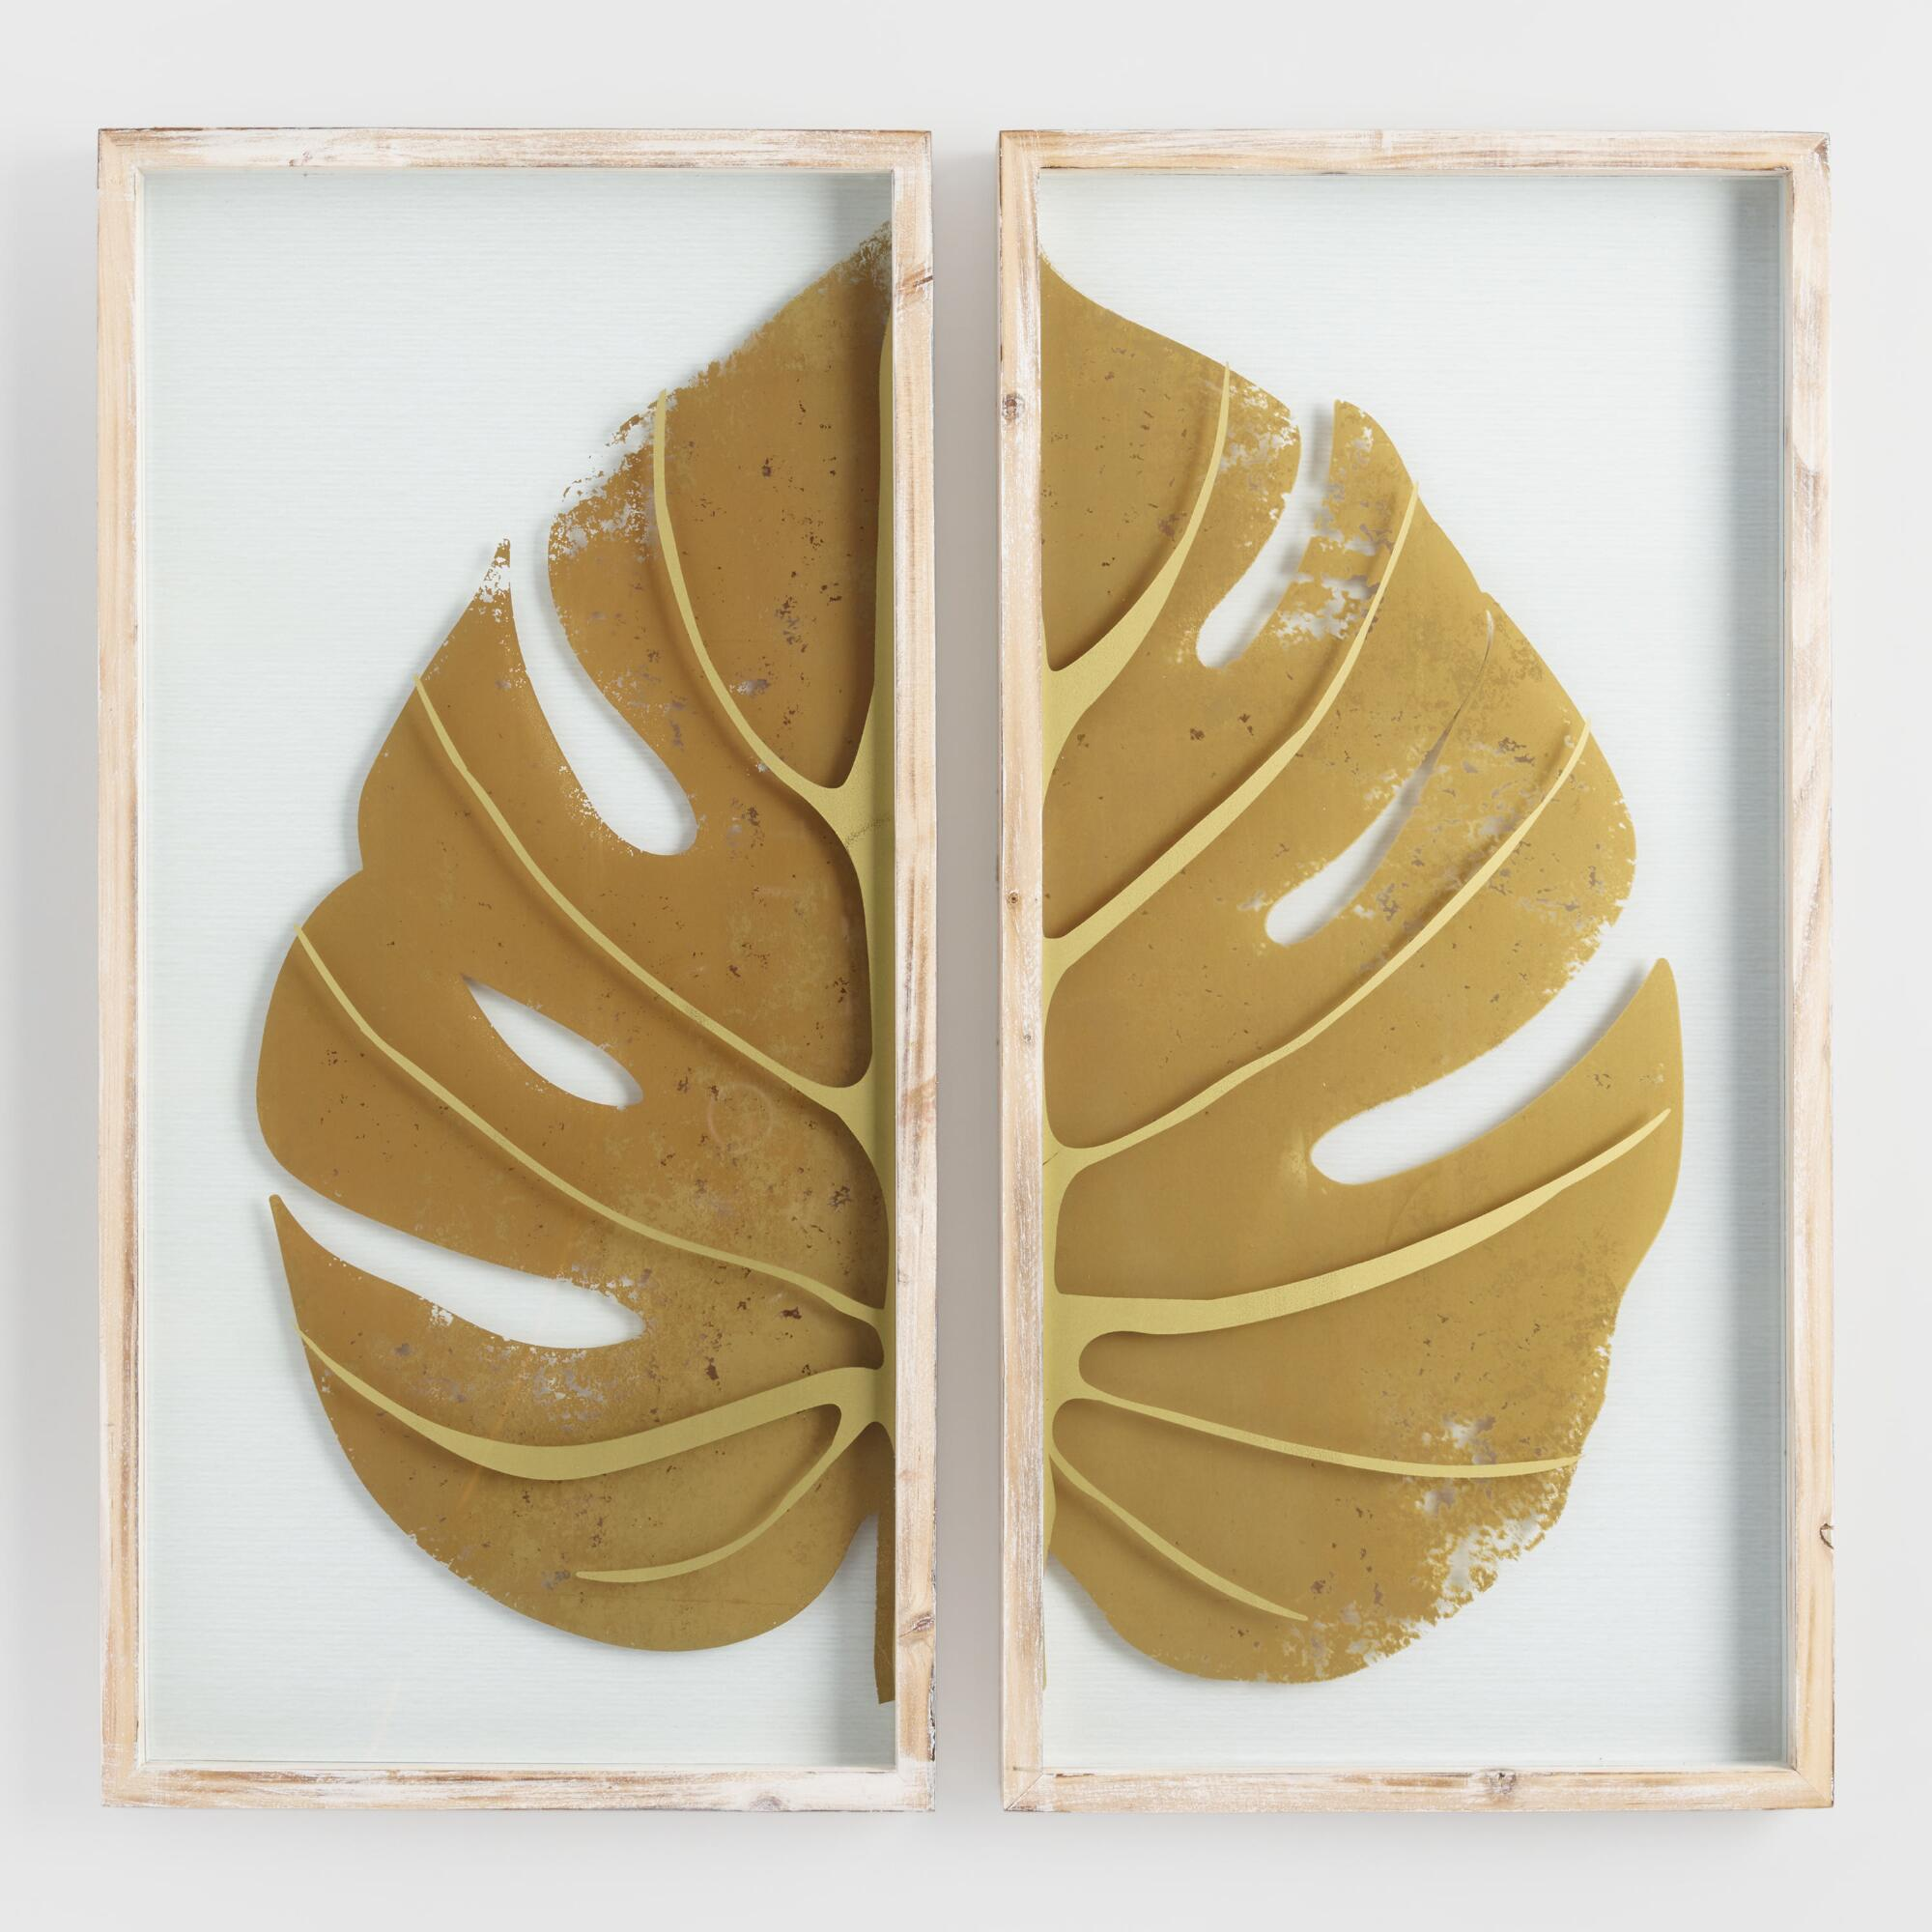 Gold Leaf On Glass Diptych Shadow Box Wall Art Set Of 2 by World Market